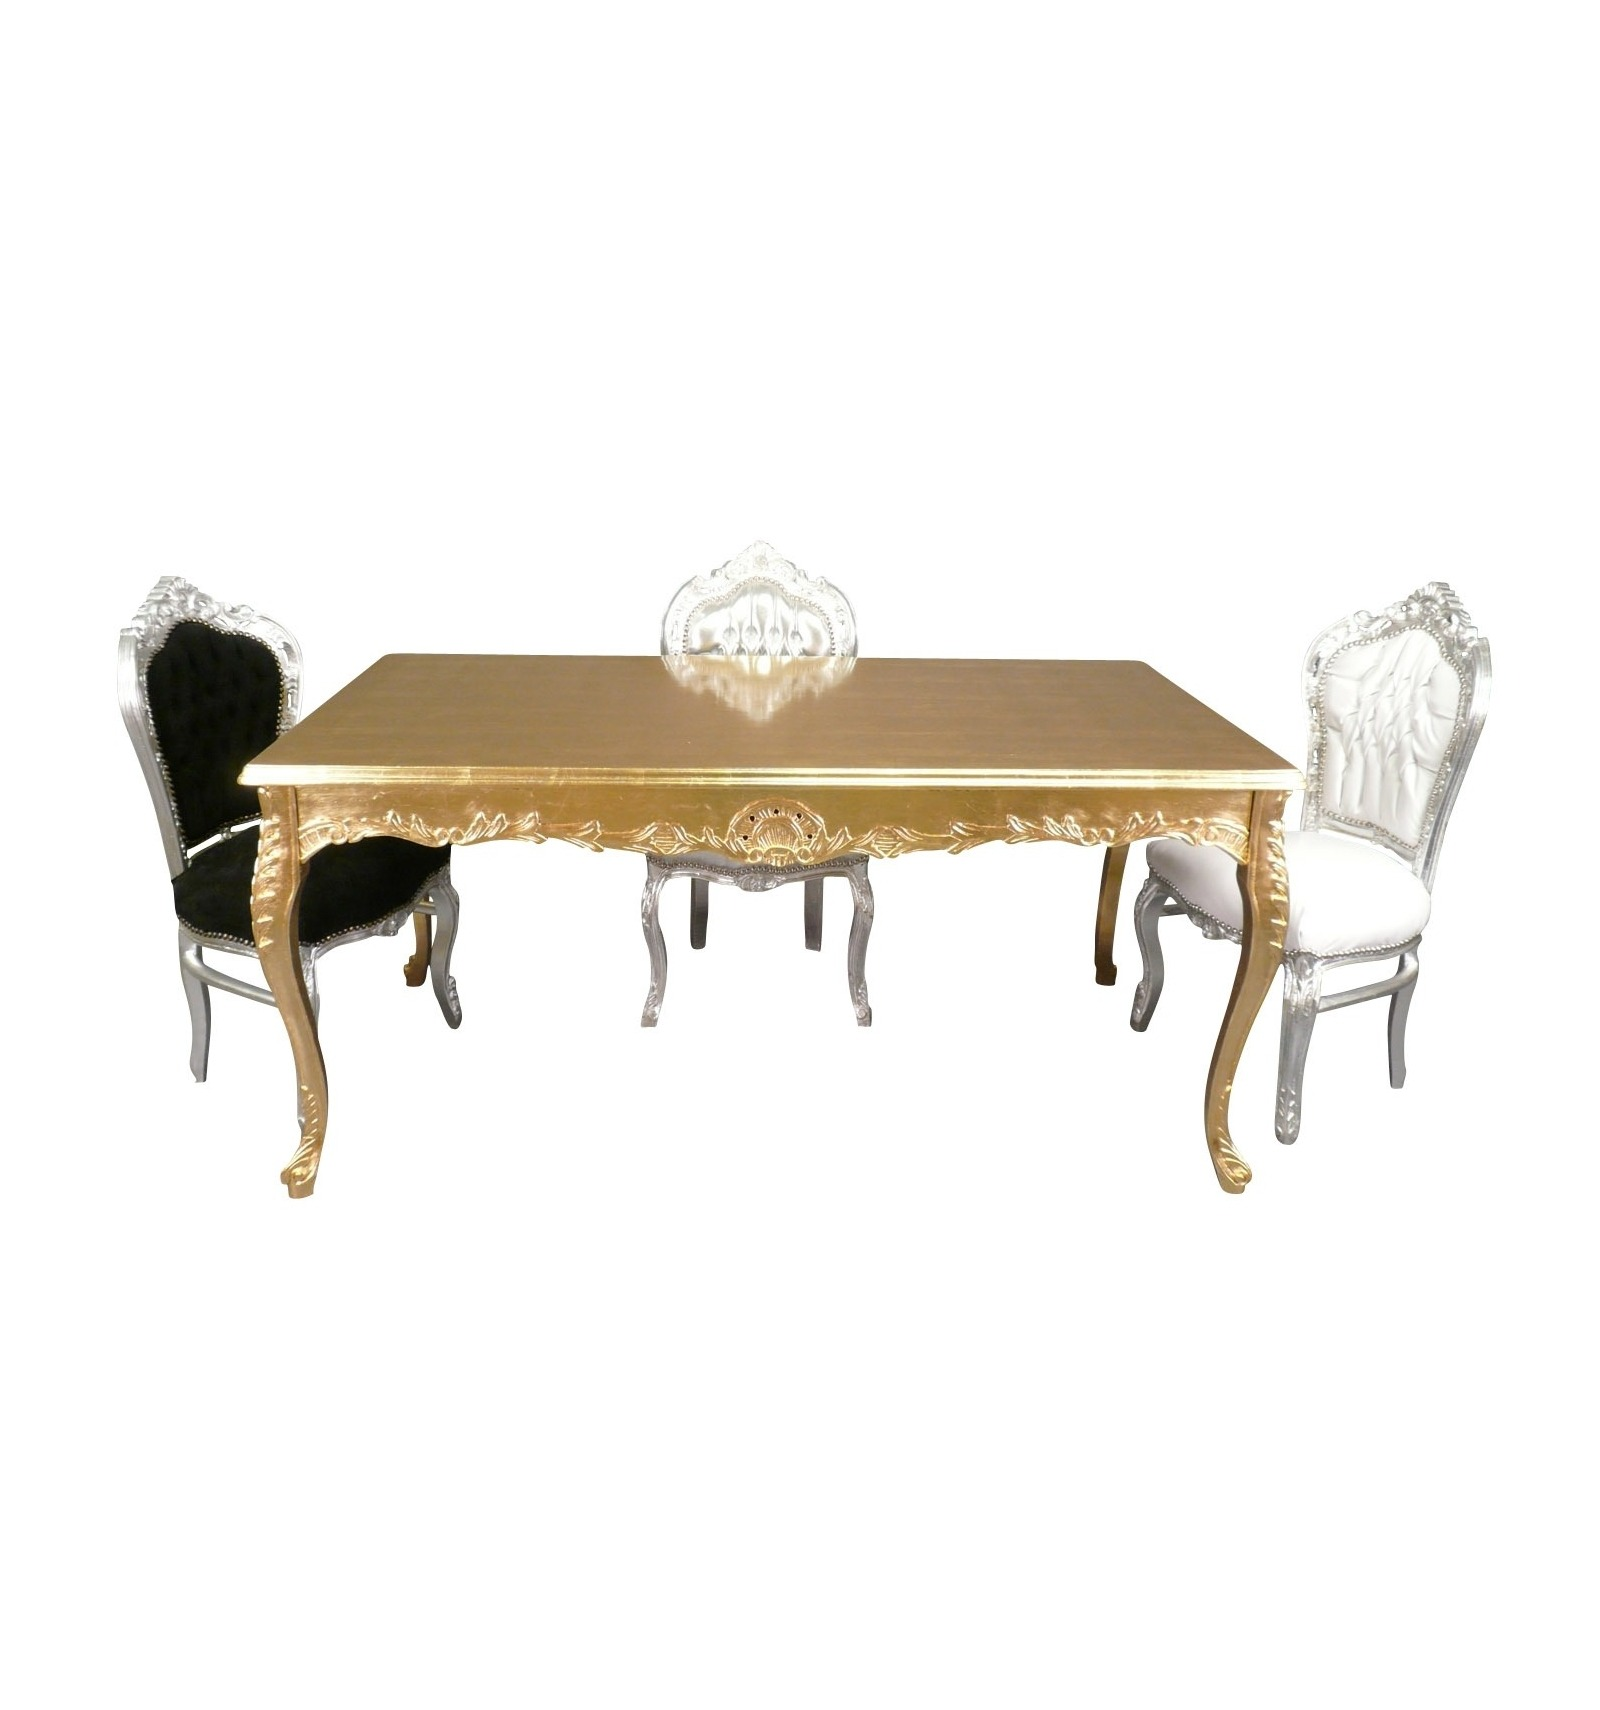 table baroque en bois dor pour 8 personnes mobilier rococo. Black Bedroom Furniture Sets. Home Design Ideas